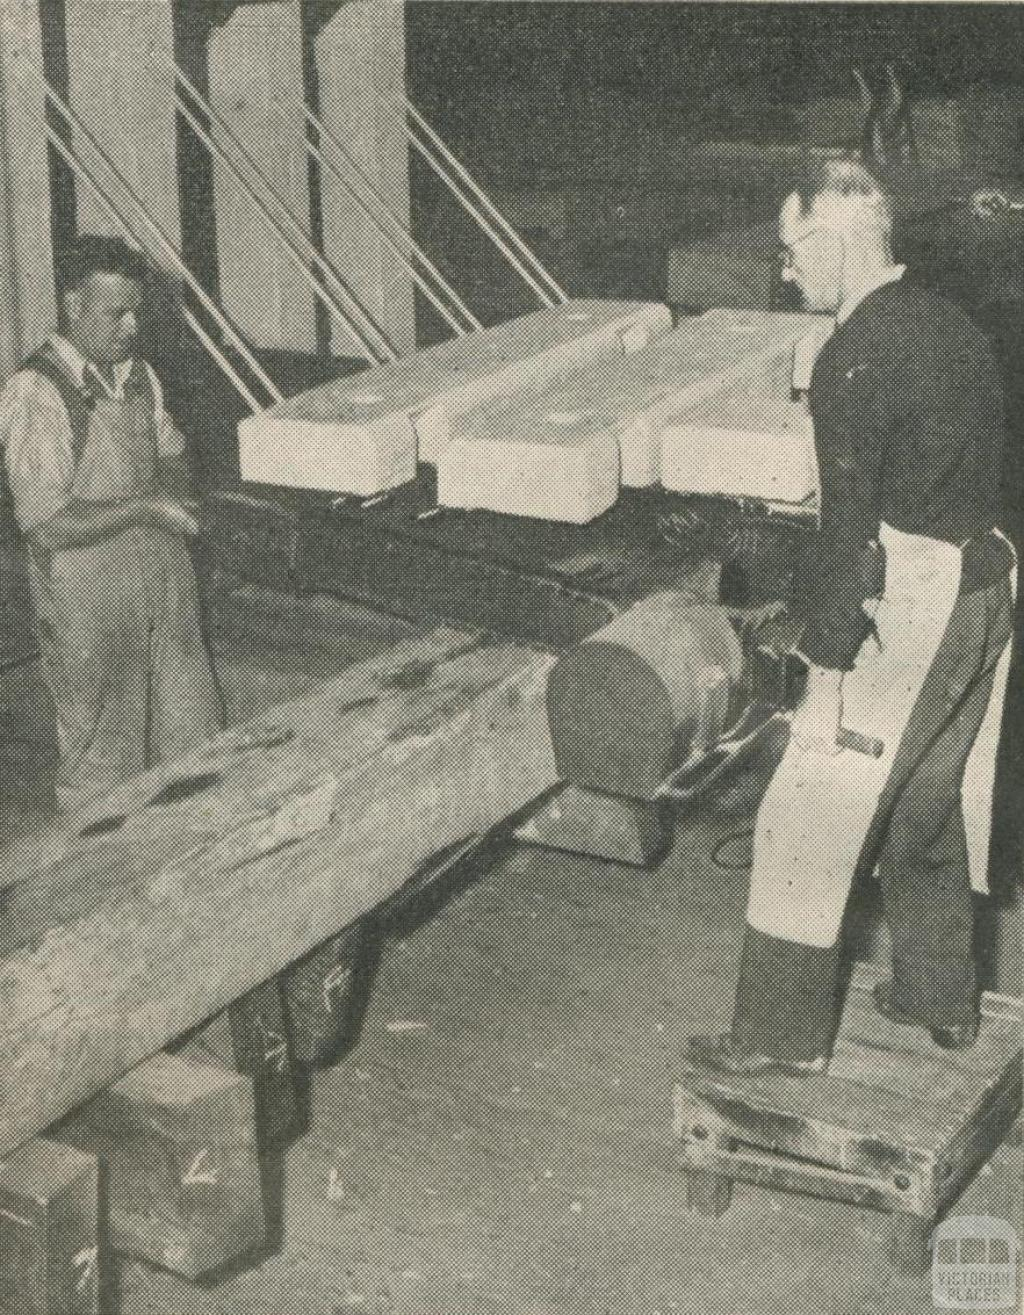 Buffer stops being turned out, Spotswood, 1950